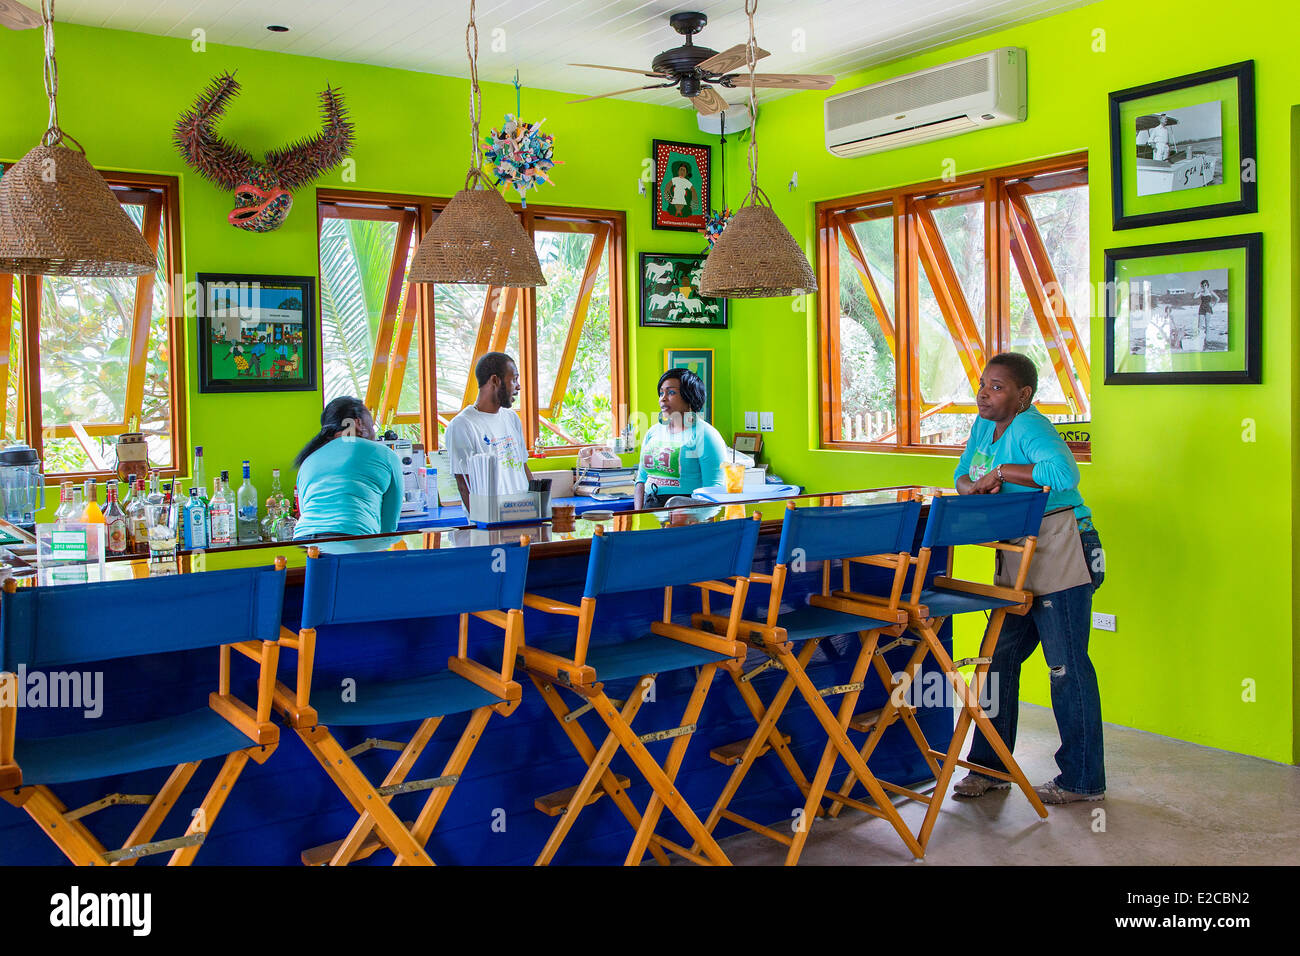 Bahamas, Harbour Island, The Sip Sip restaurant - Stock Image